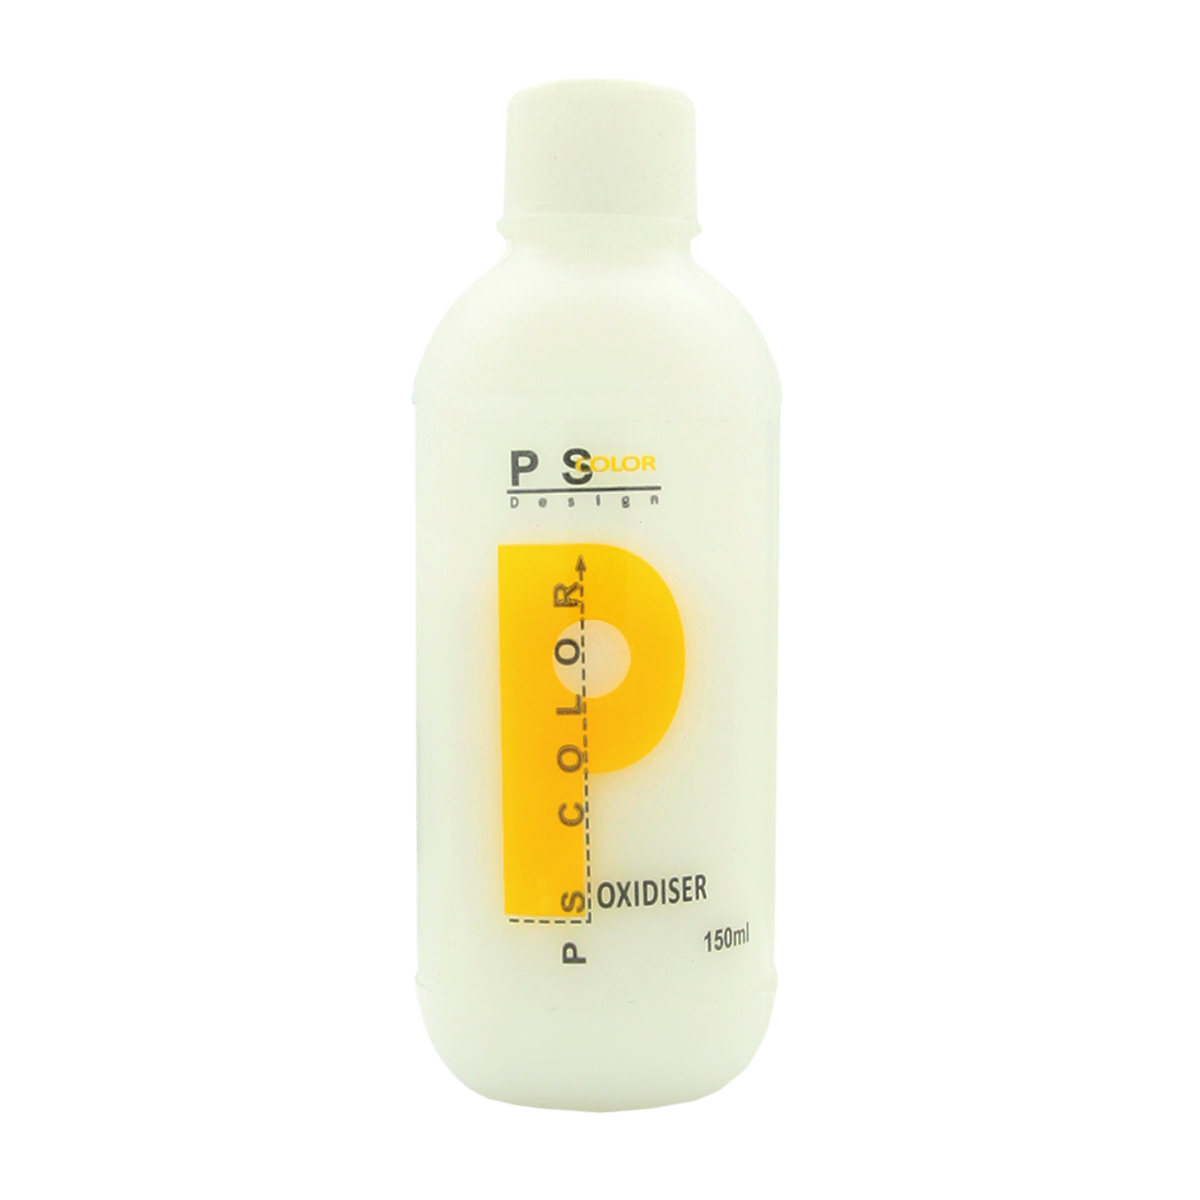 PS-Color-Oxidiser-(150-ml)-sfw(1)